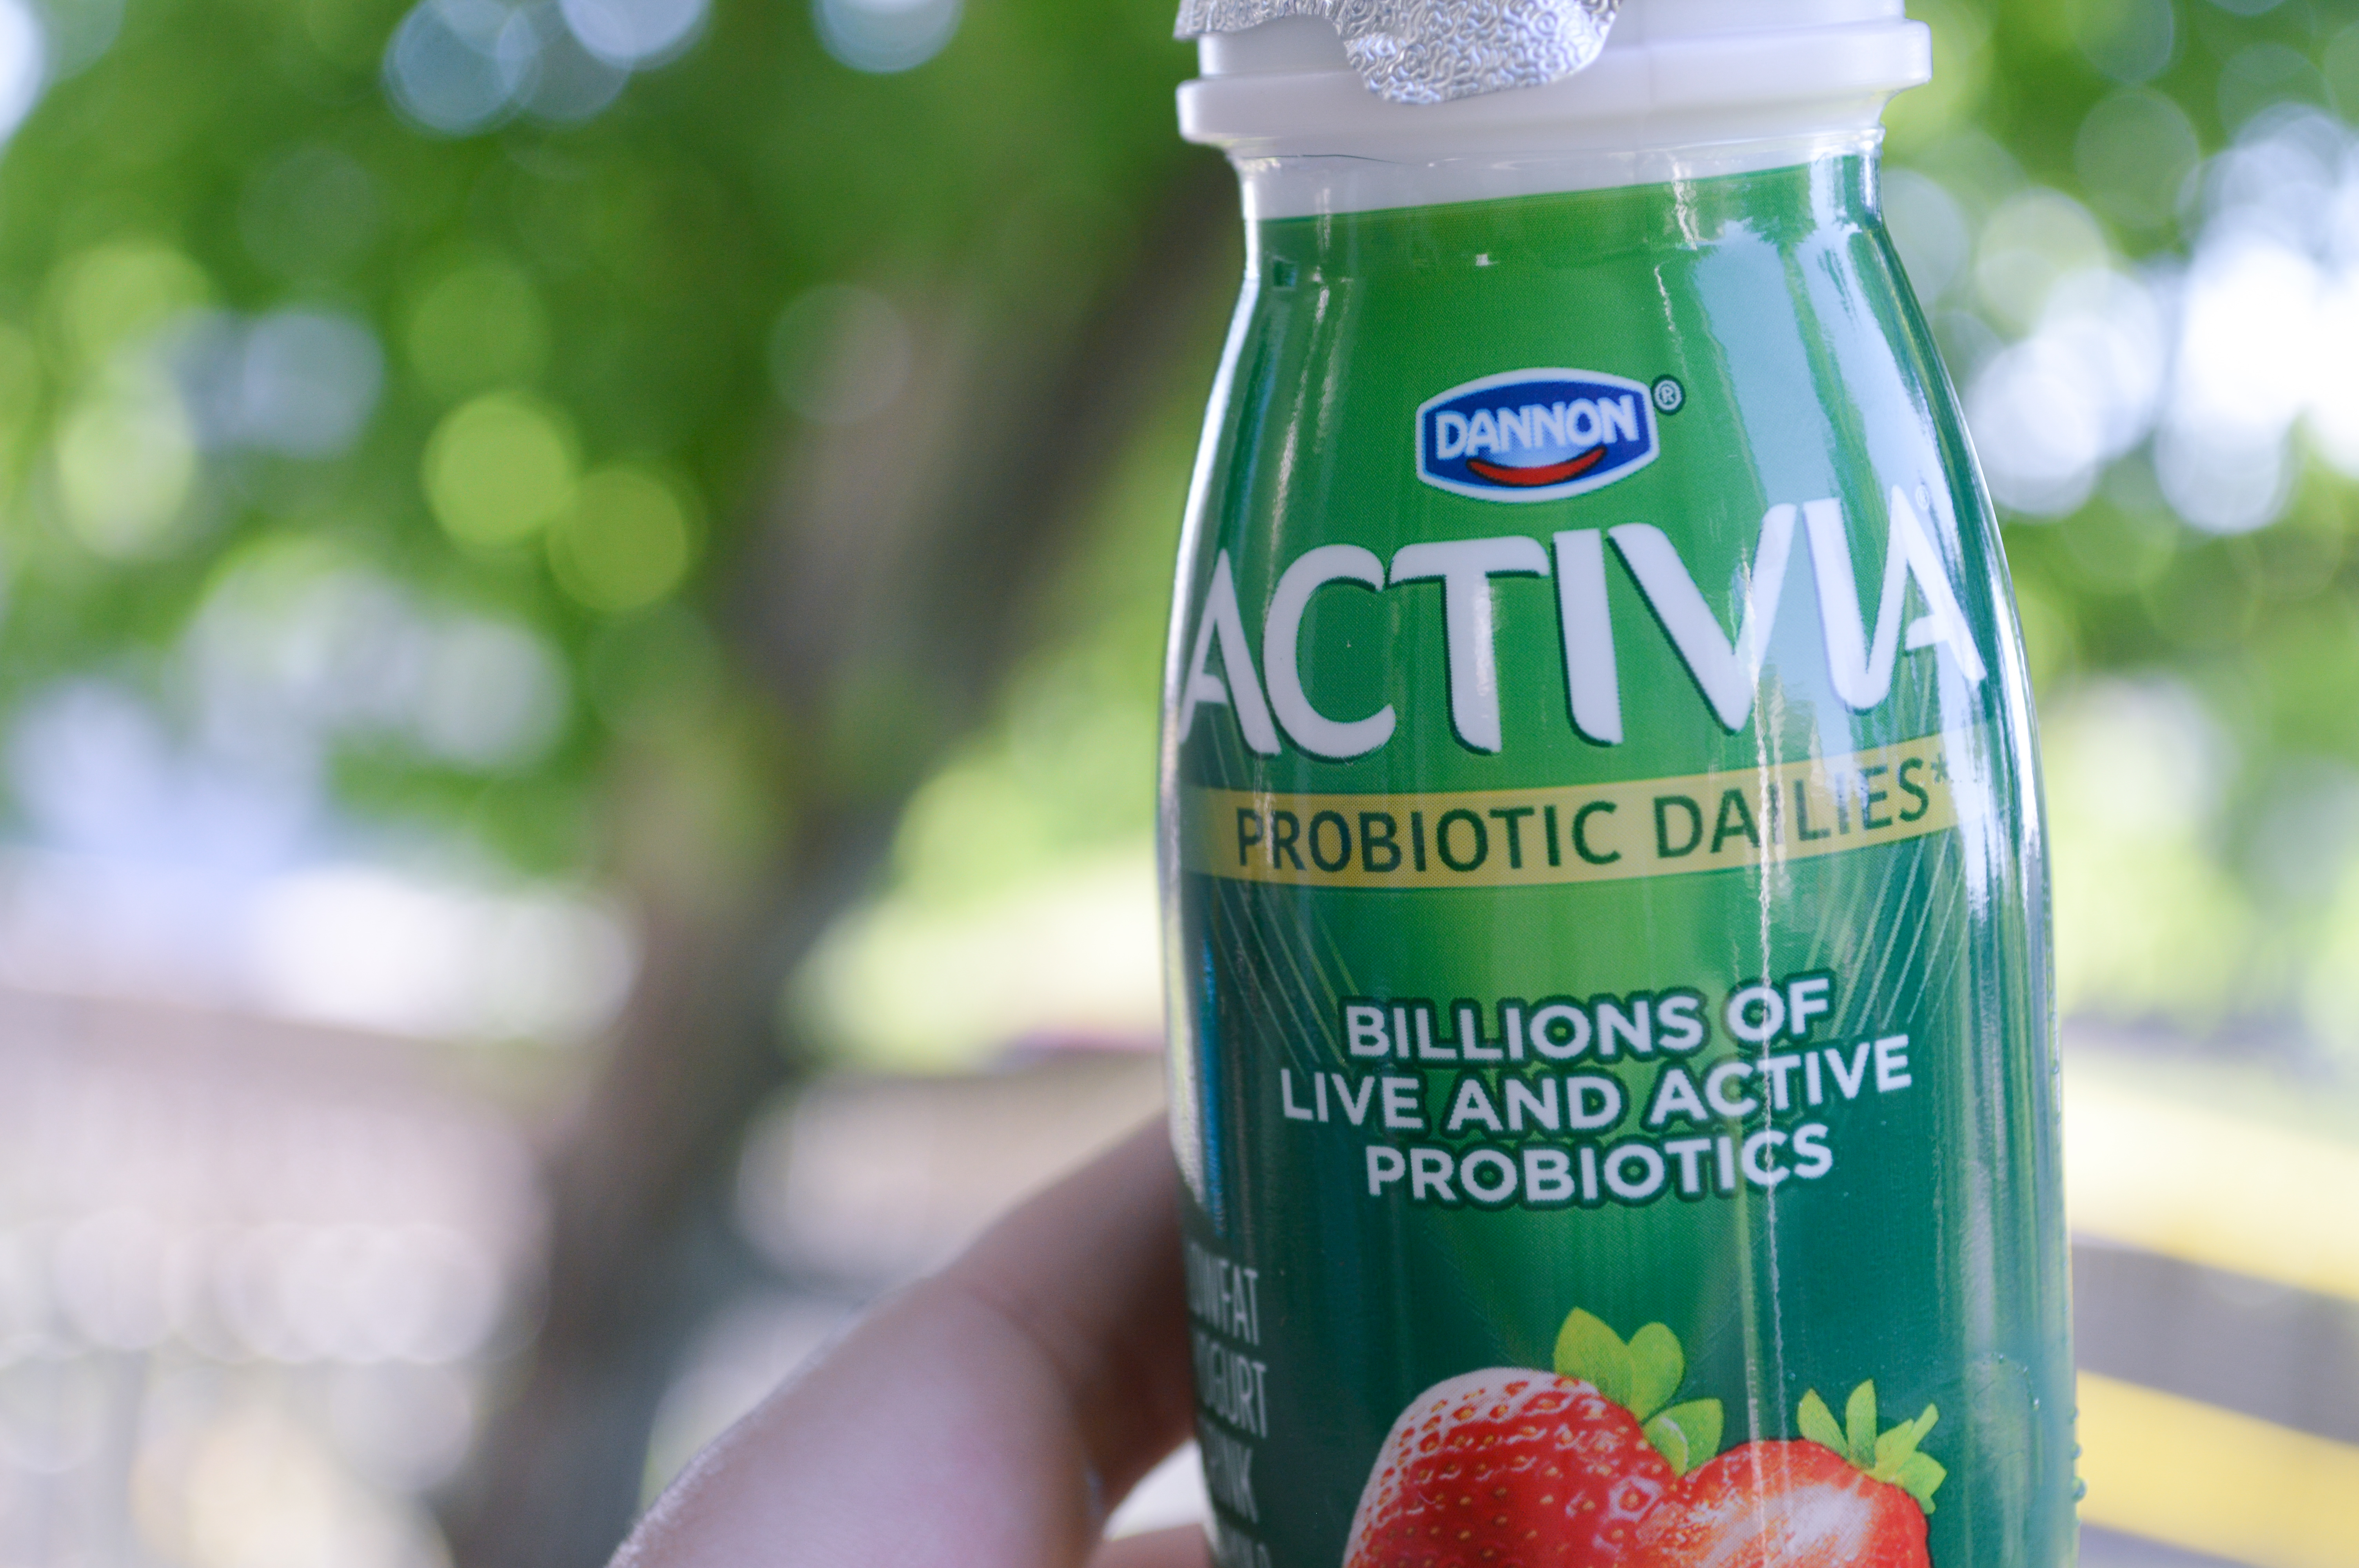 Making Health a Priority with Activia Probiotic Dailies featured by popular Denver lifestyle blogger, All Things Lovely